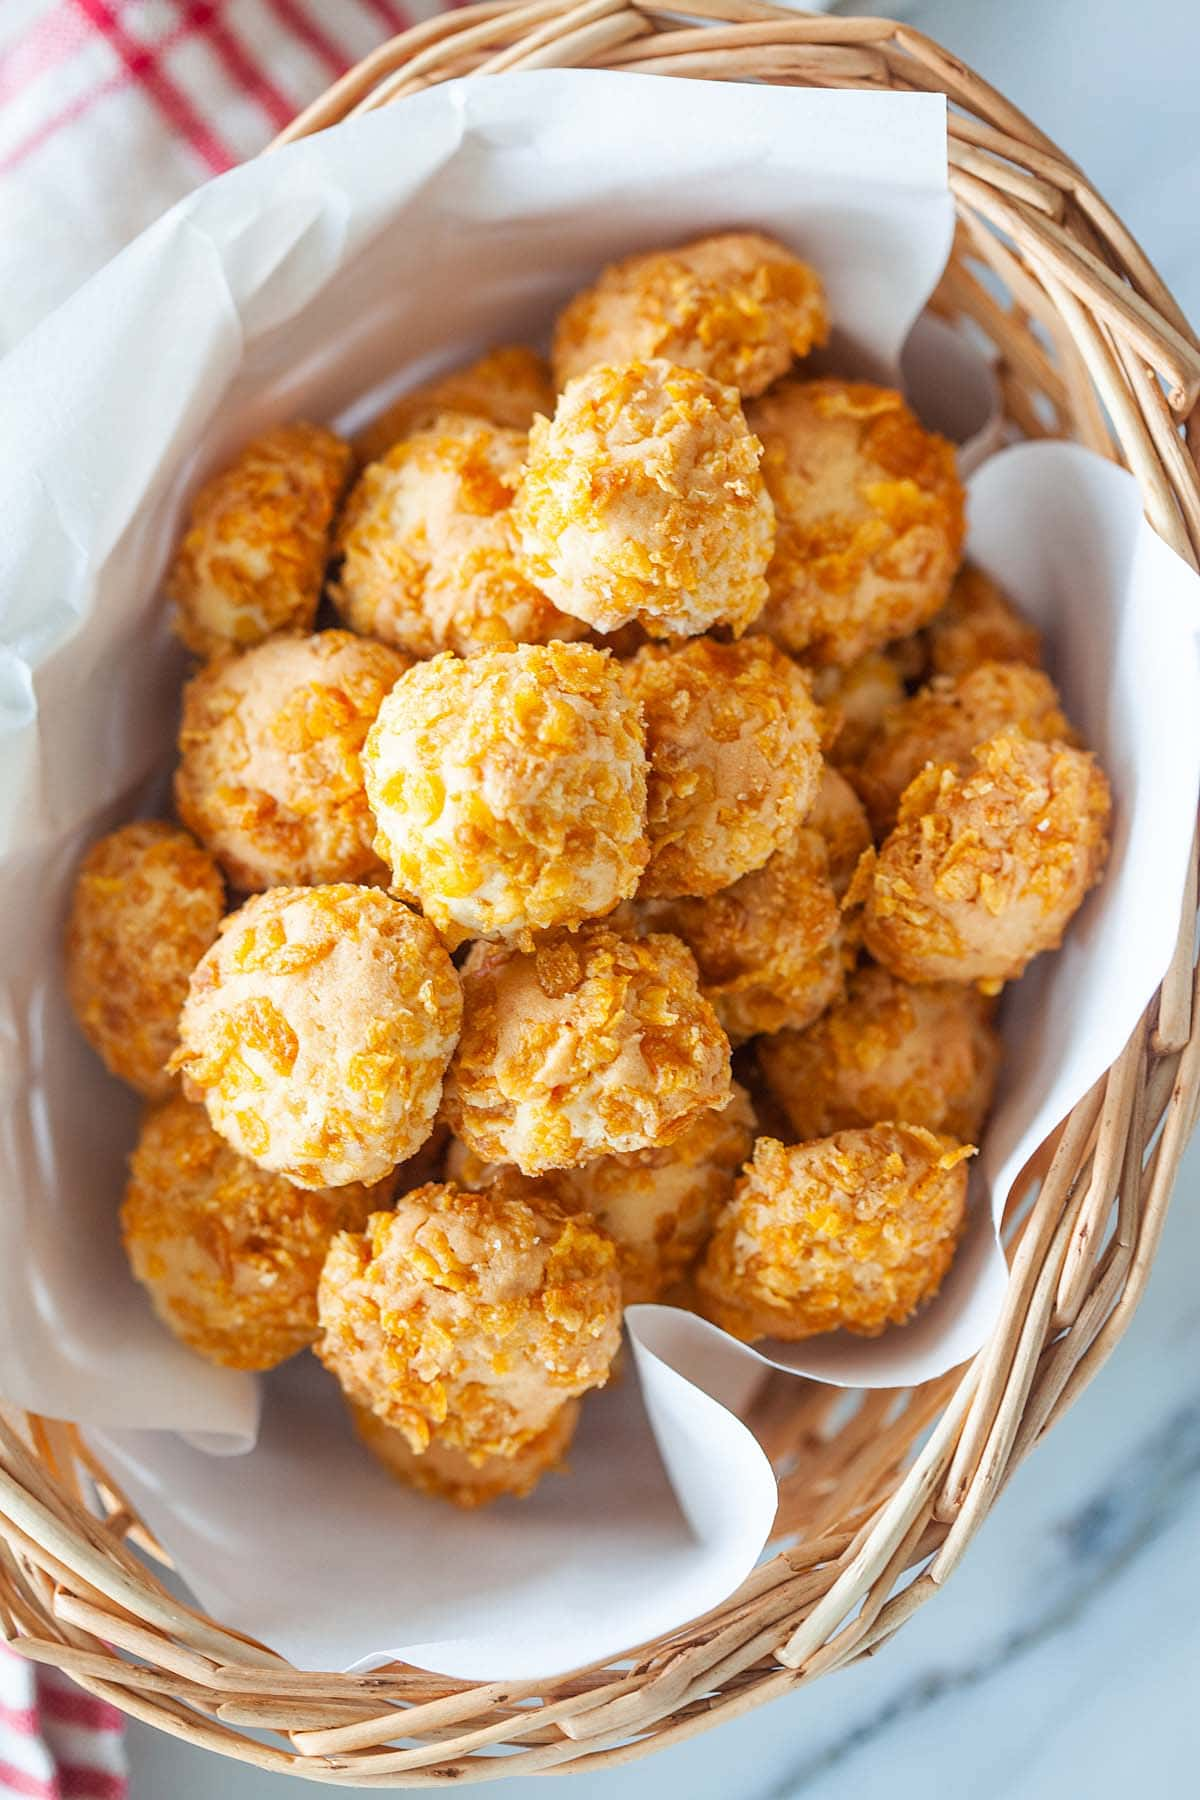 Easy cornflake cookies recipe that yields buttery, crunchy, and tasty cornflake cookies.